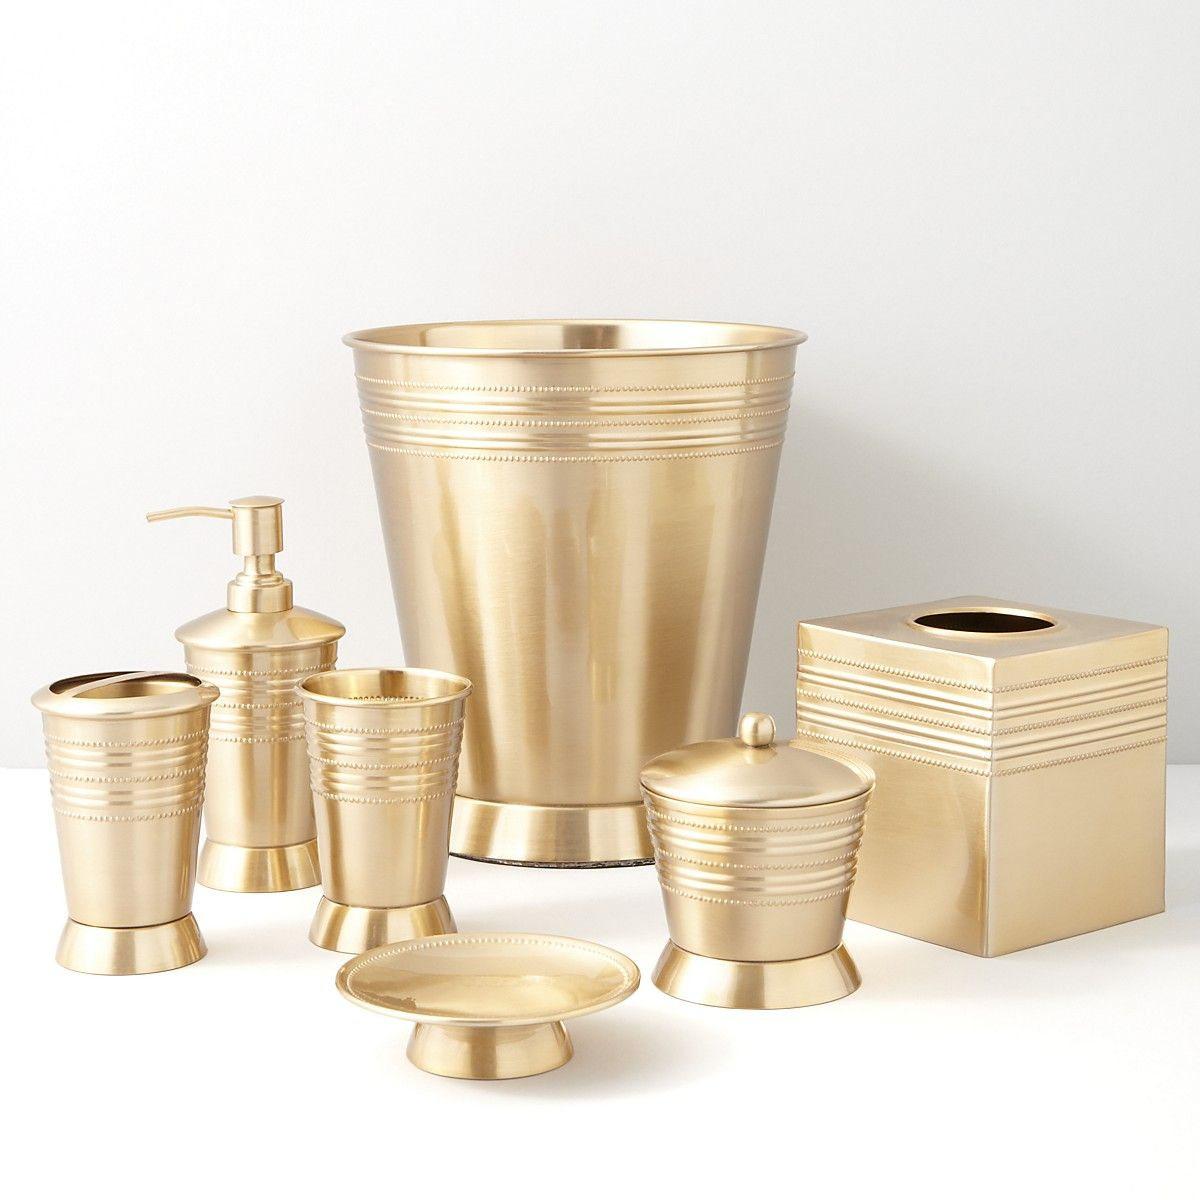 New metallic bead satin brass by paradigm trends bath for Gold bathroom accessories